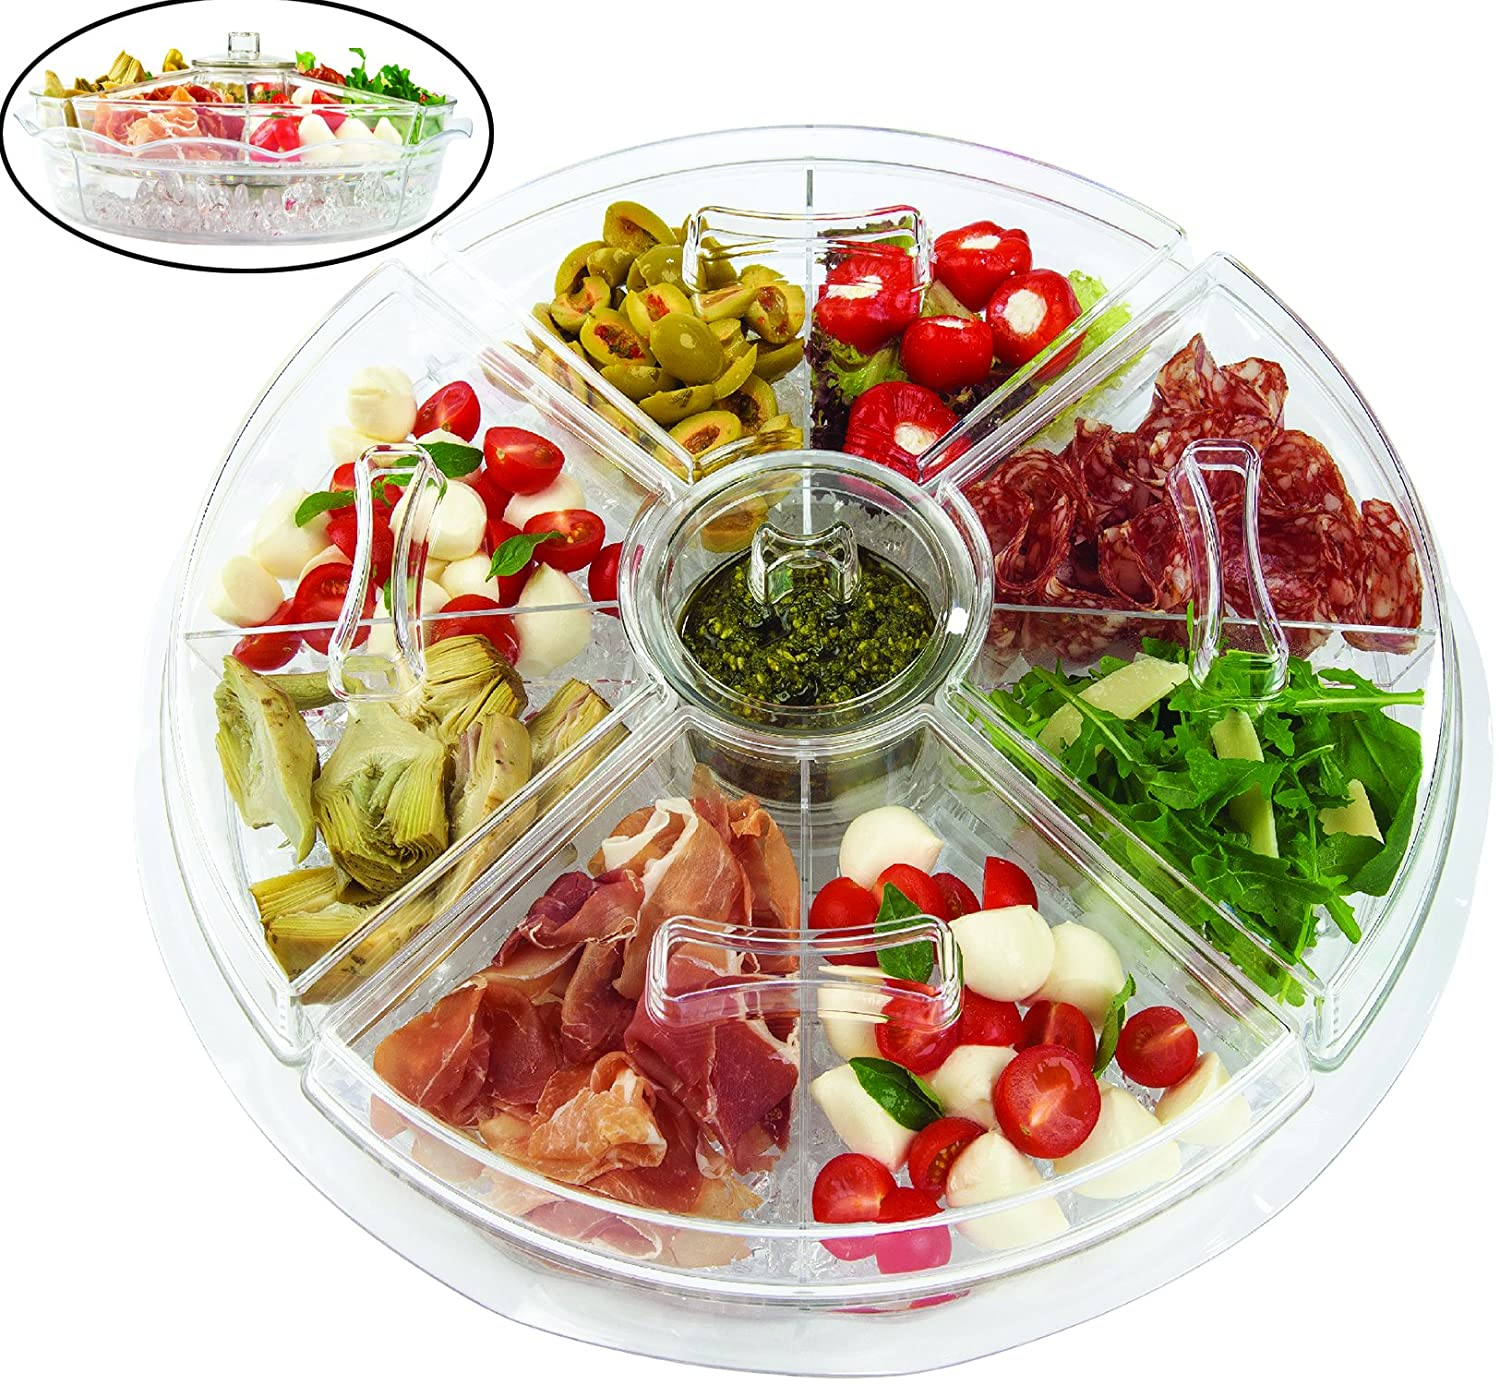 Jumbl 8-Section Ice-Chilled Revolving Appetizer Tray w/Vented Ice Chamber JUM-009